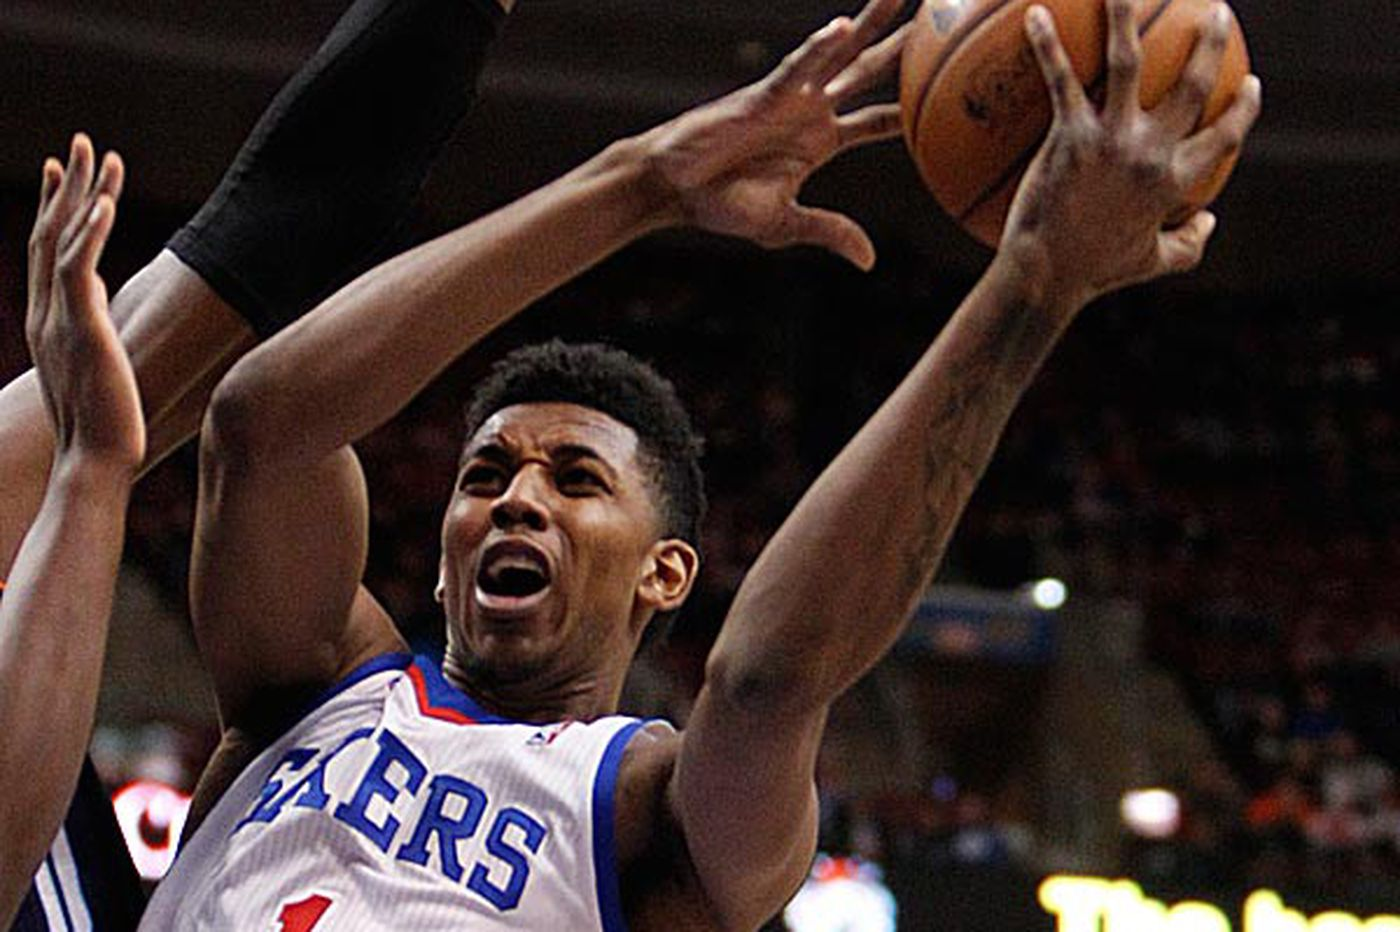 Woman sues Nick Young of the 76ers, claiming sexual assault